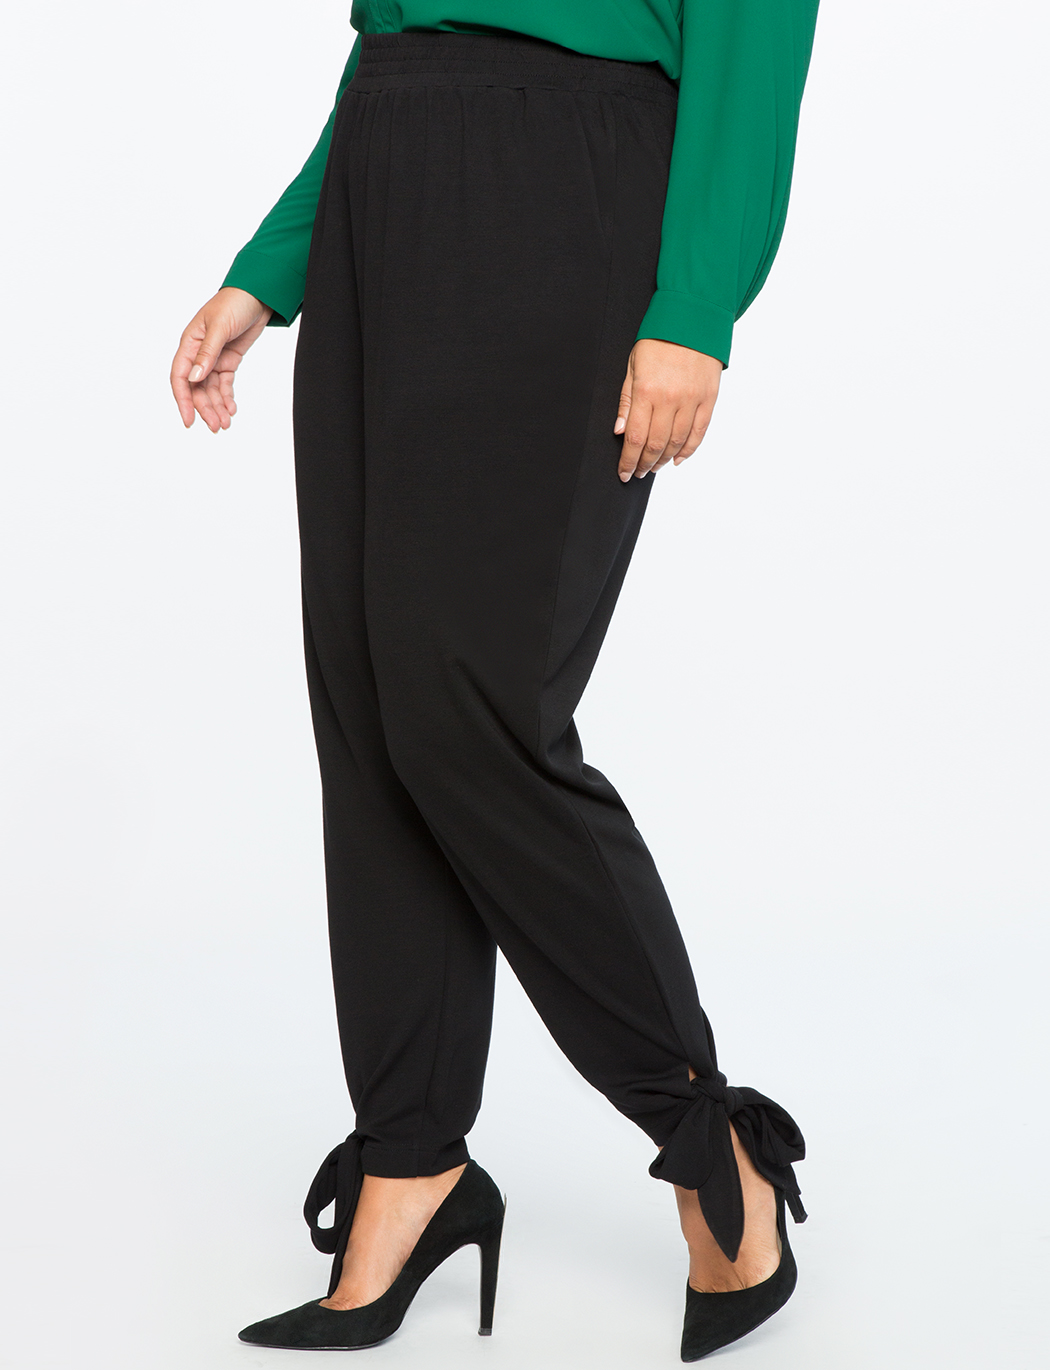 Pull On Easy Ankle Wrap Pant | Women\'s Plus Size Pants | ELOQUII